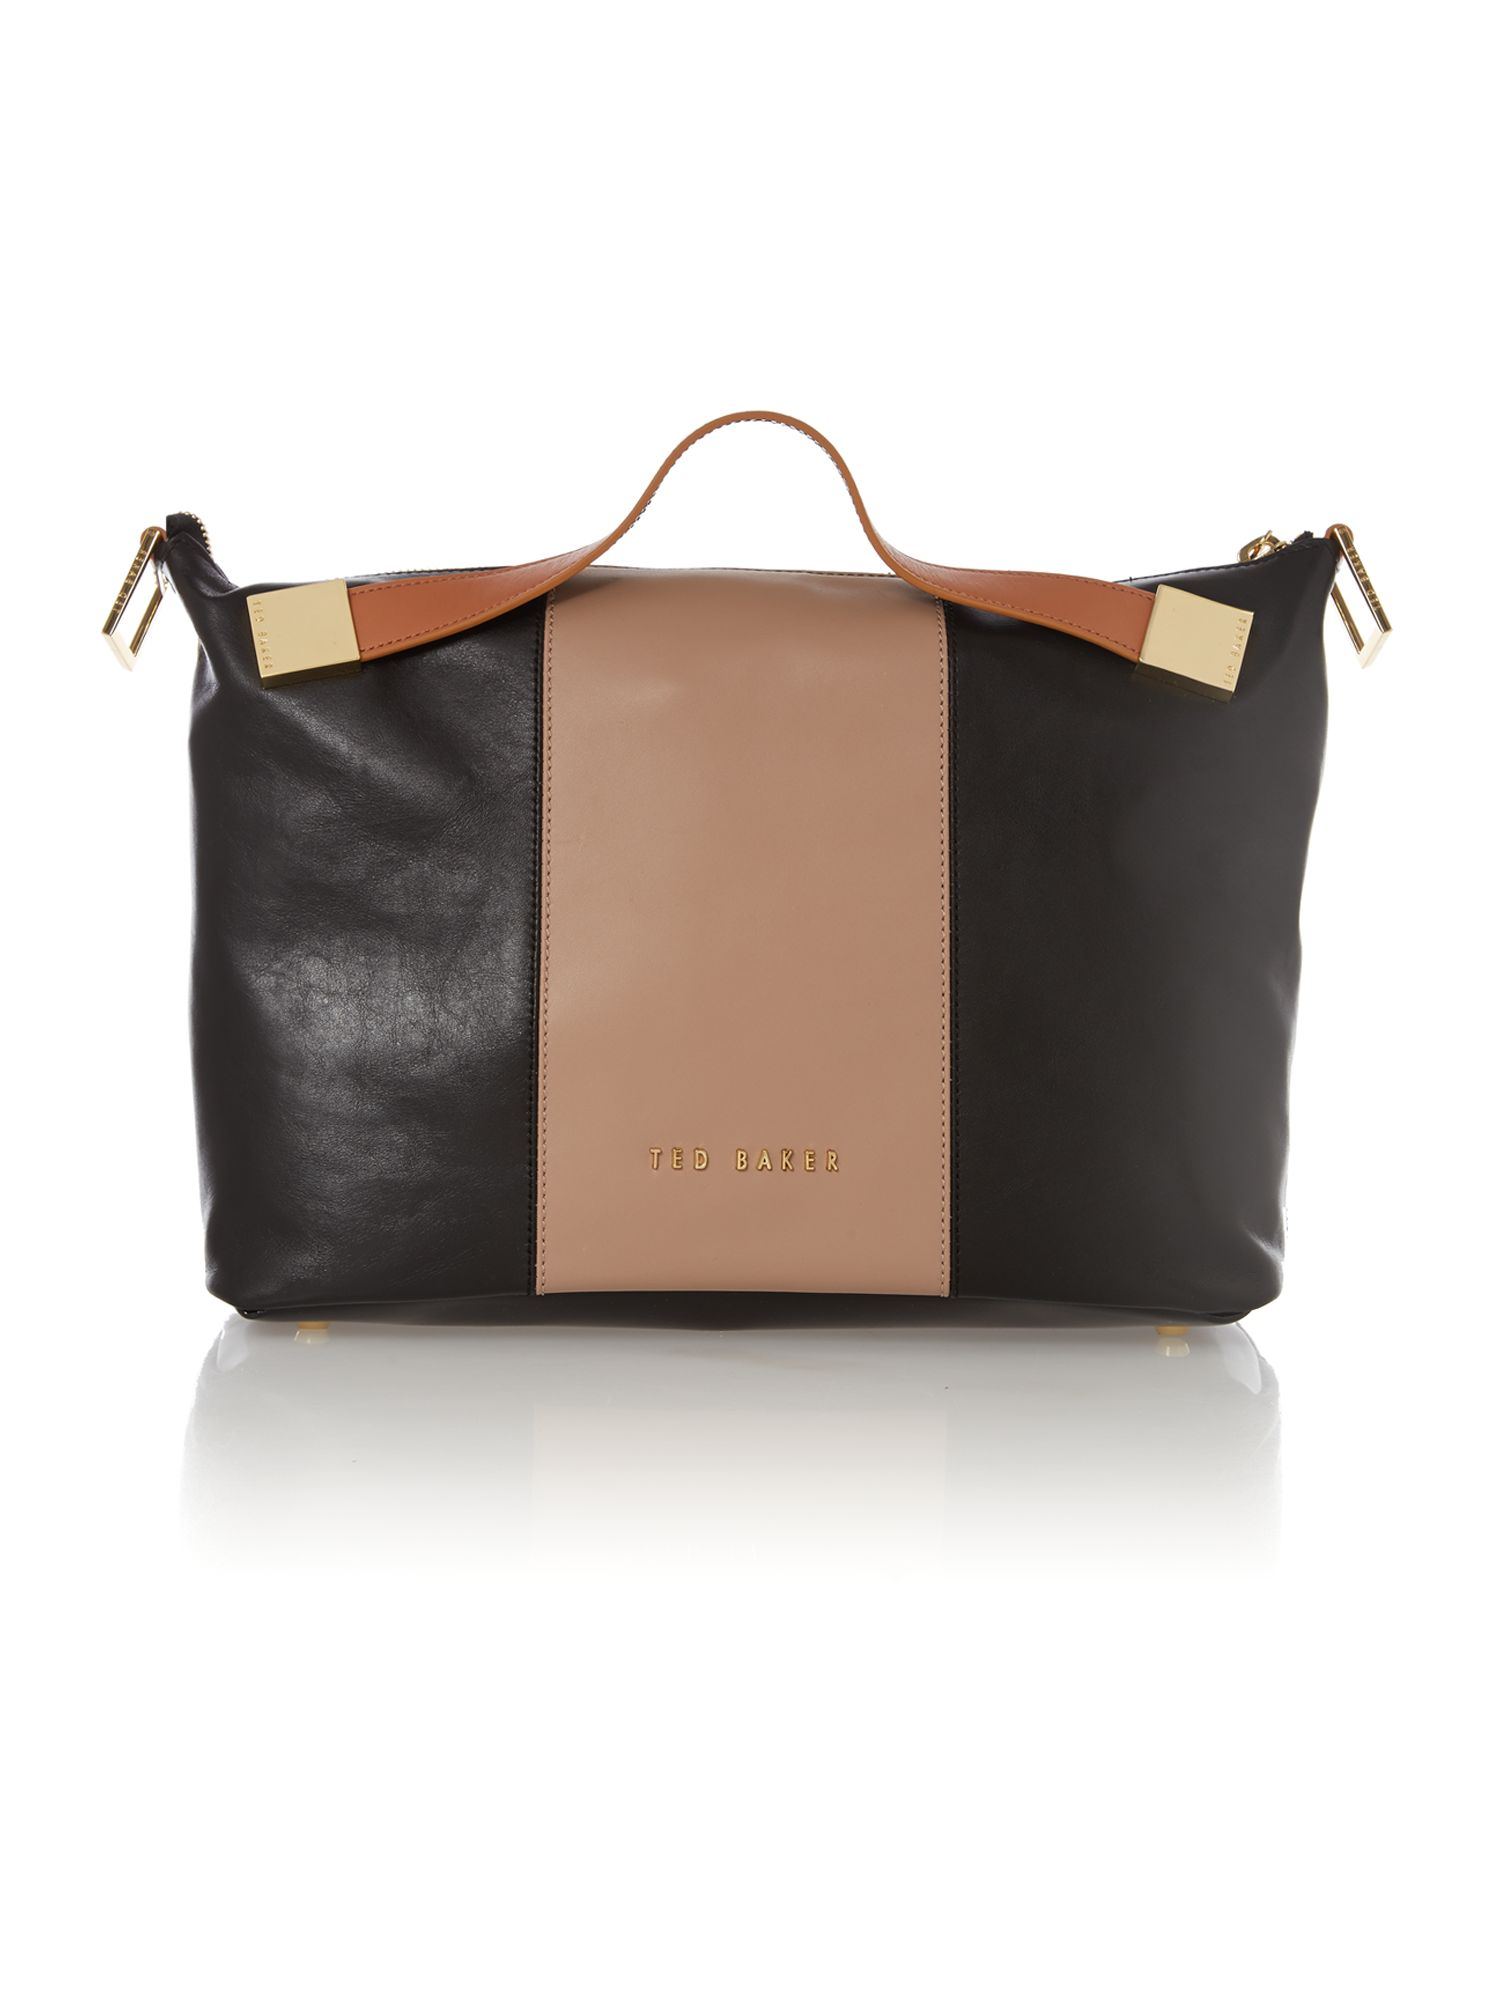 Large black and nude tote bag